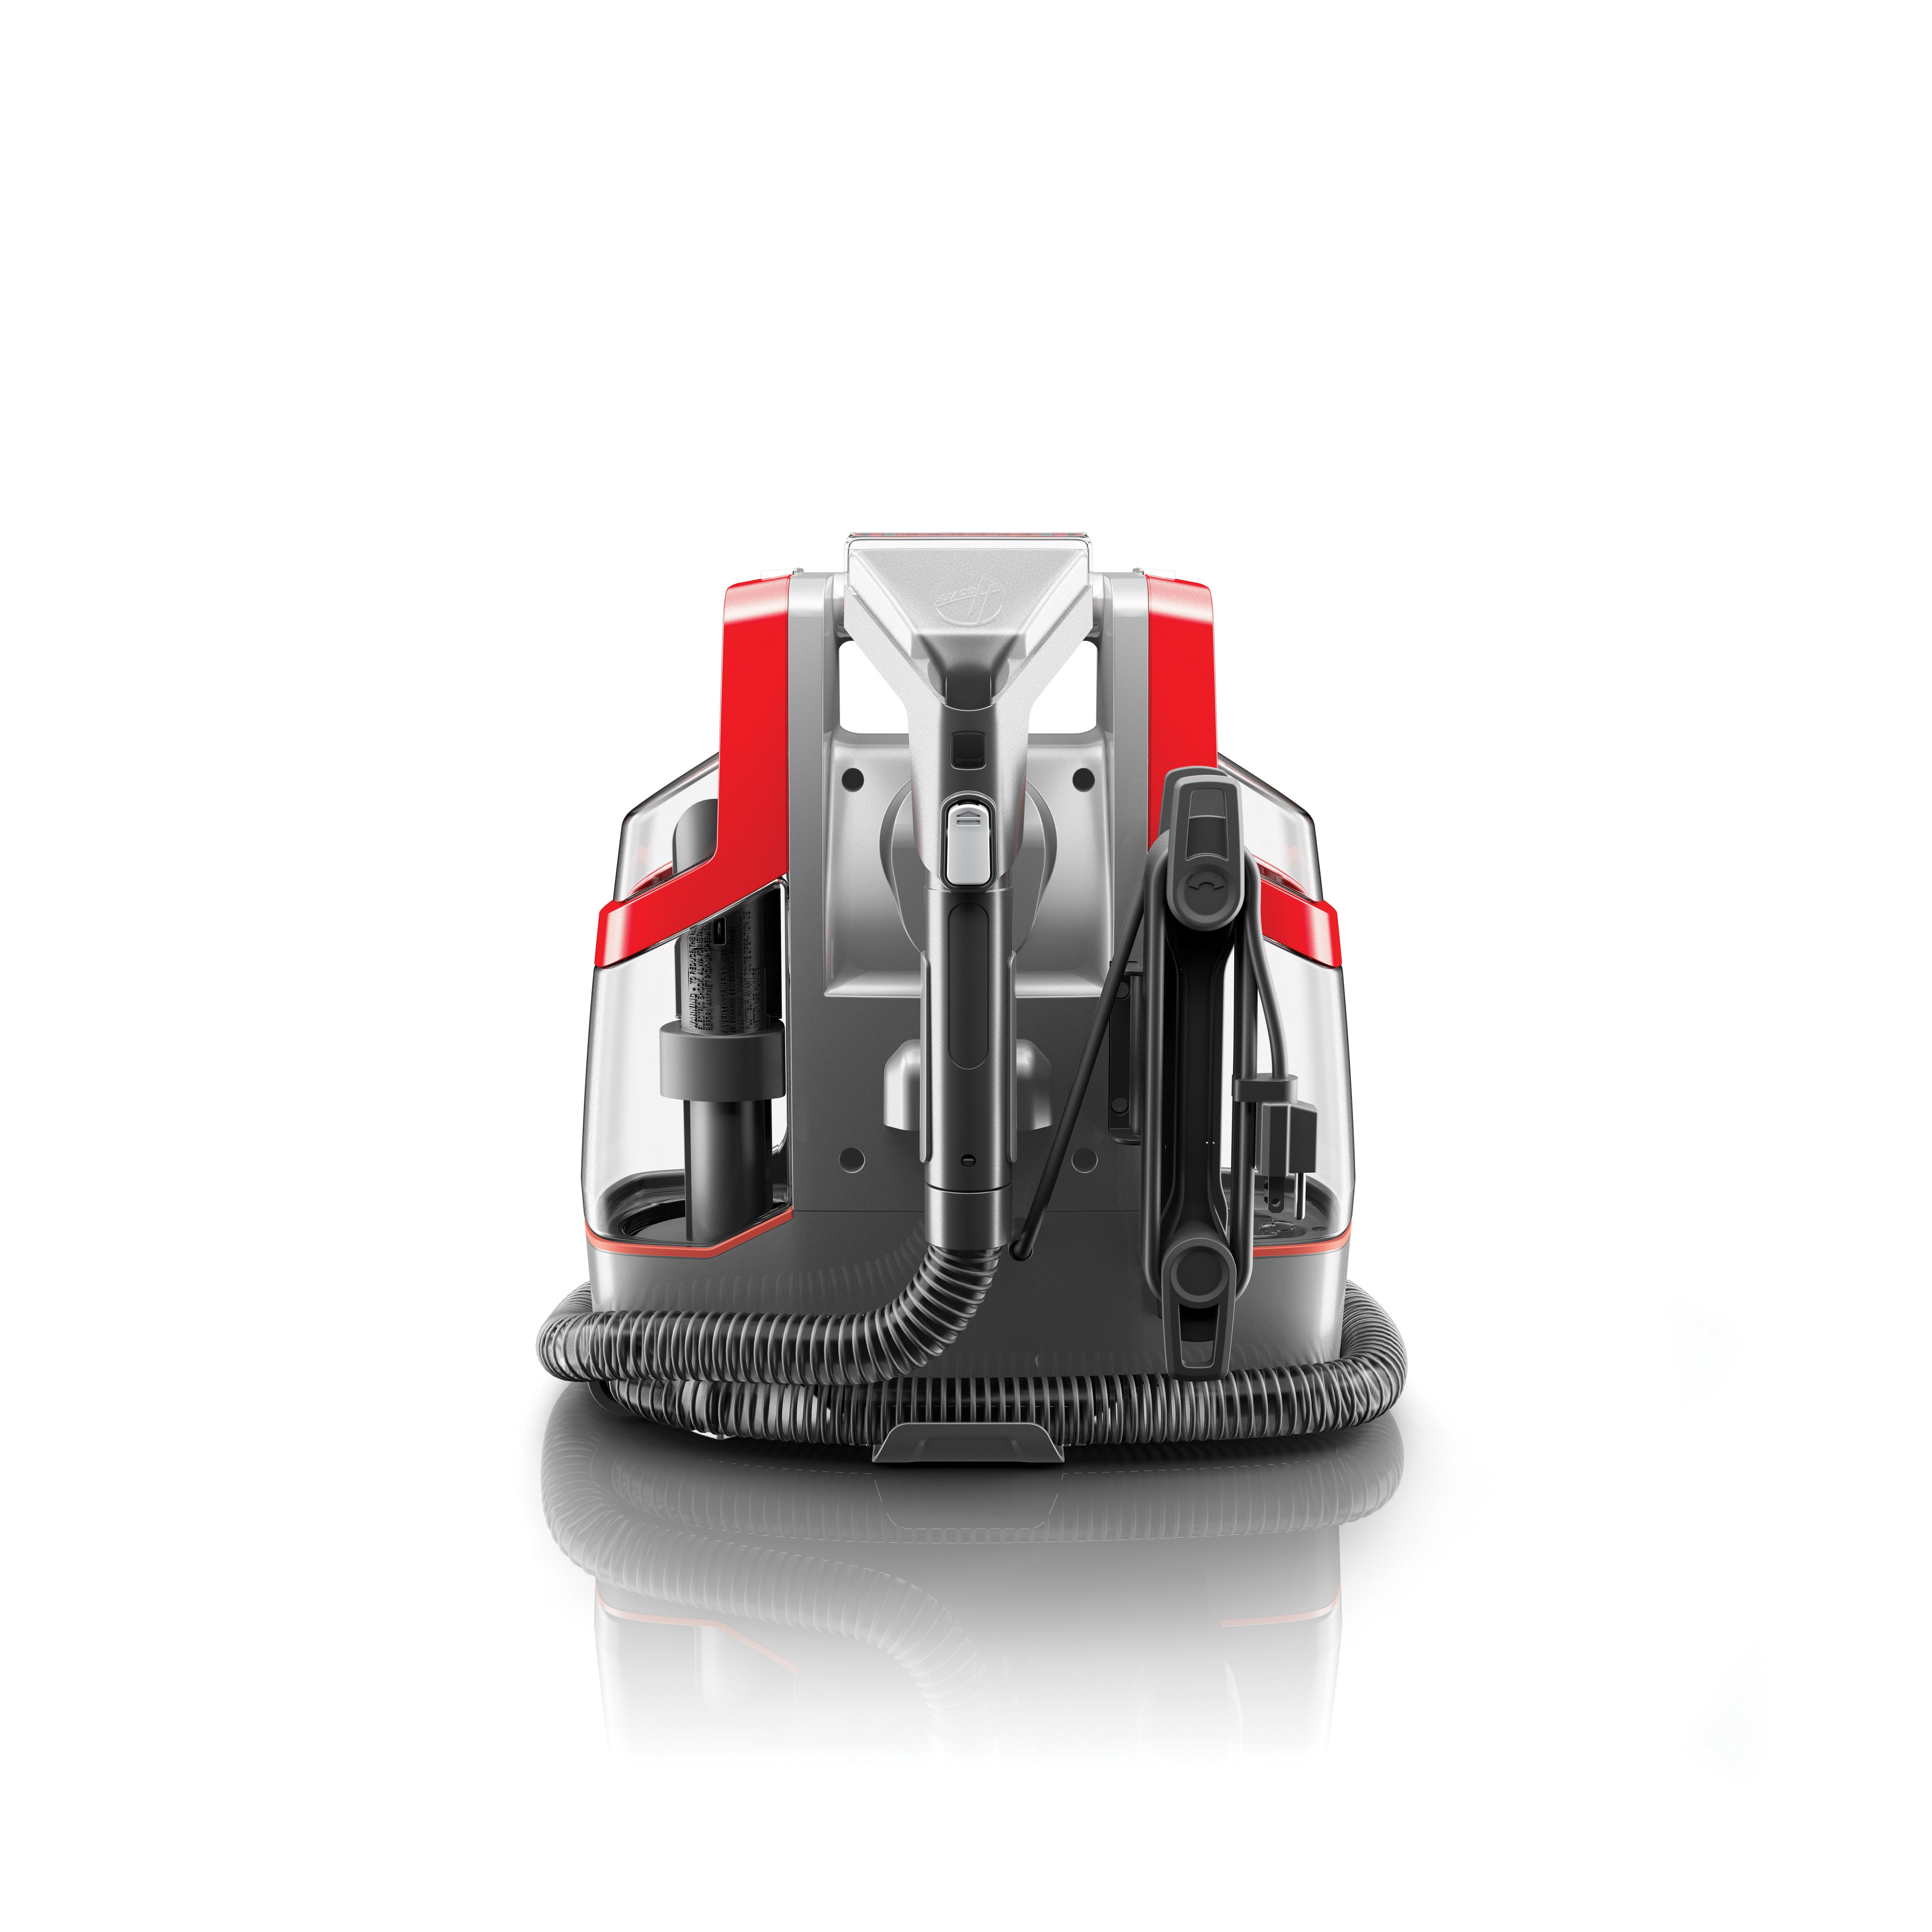 Hoover-Spotless-Portable-Carpet-amp-Upholstery-Cleaner-Washer-FH11300 thumbnail 3